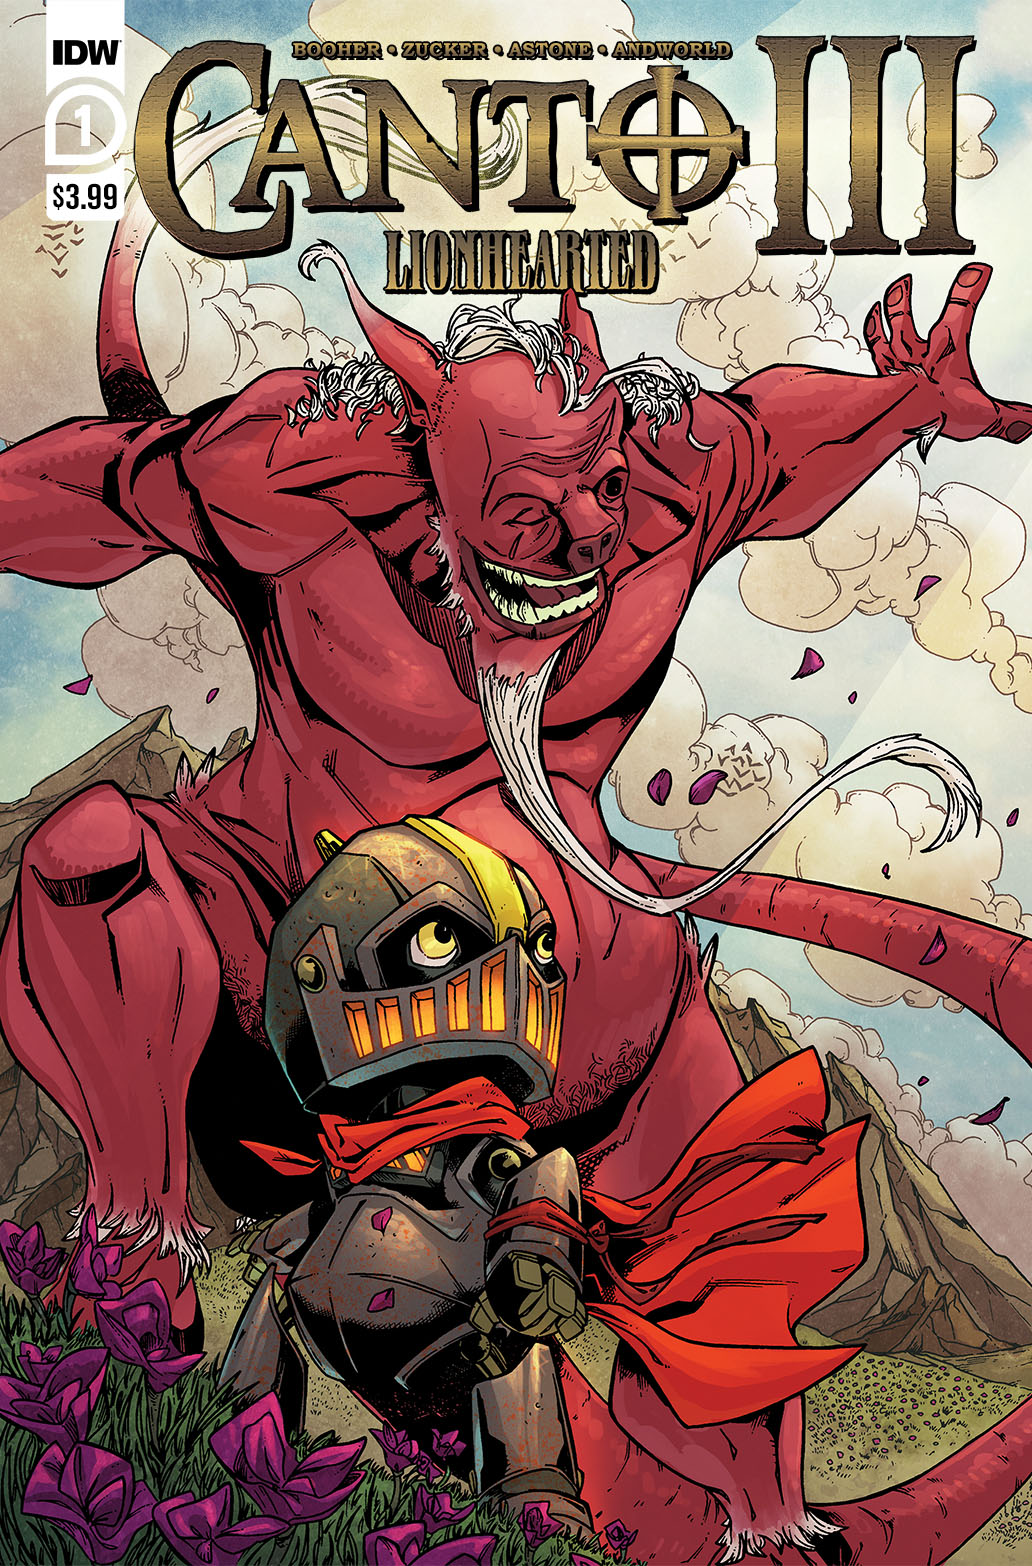 Canto-Lionhearted01_cvrA-copy IDW Publishing July 2021 Solicitations